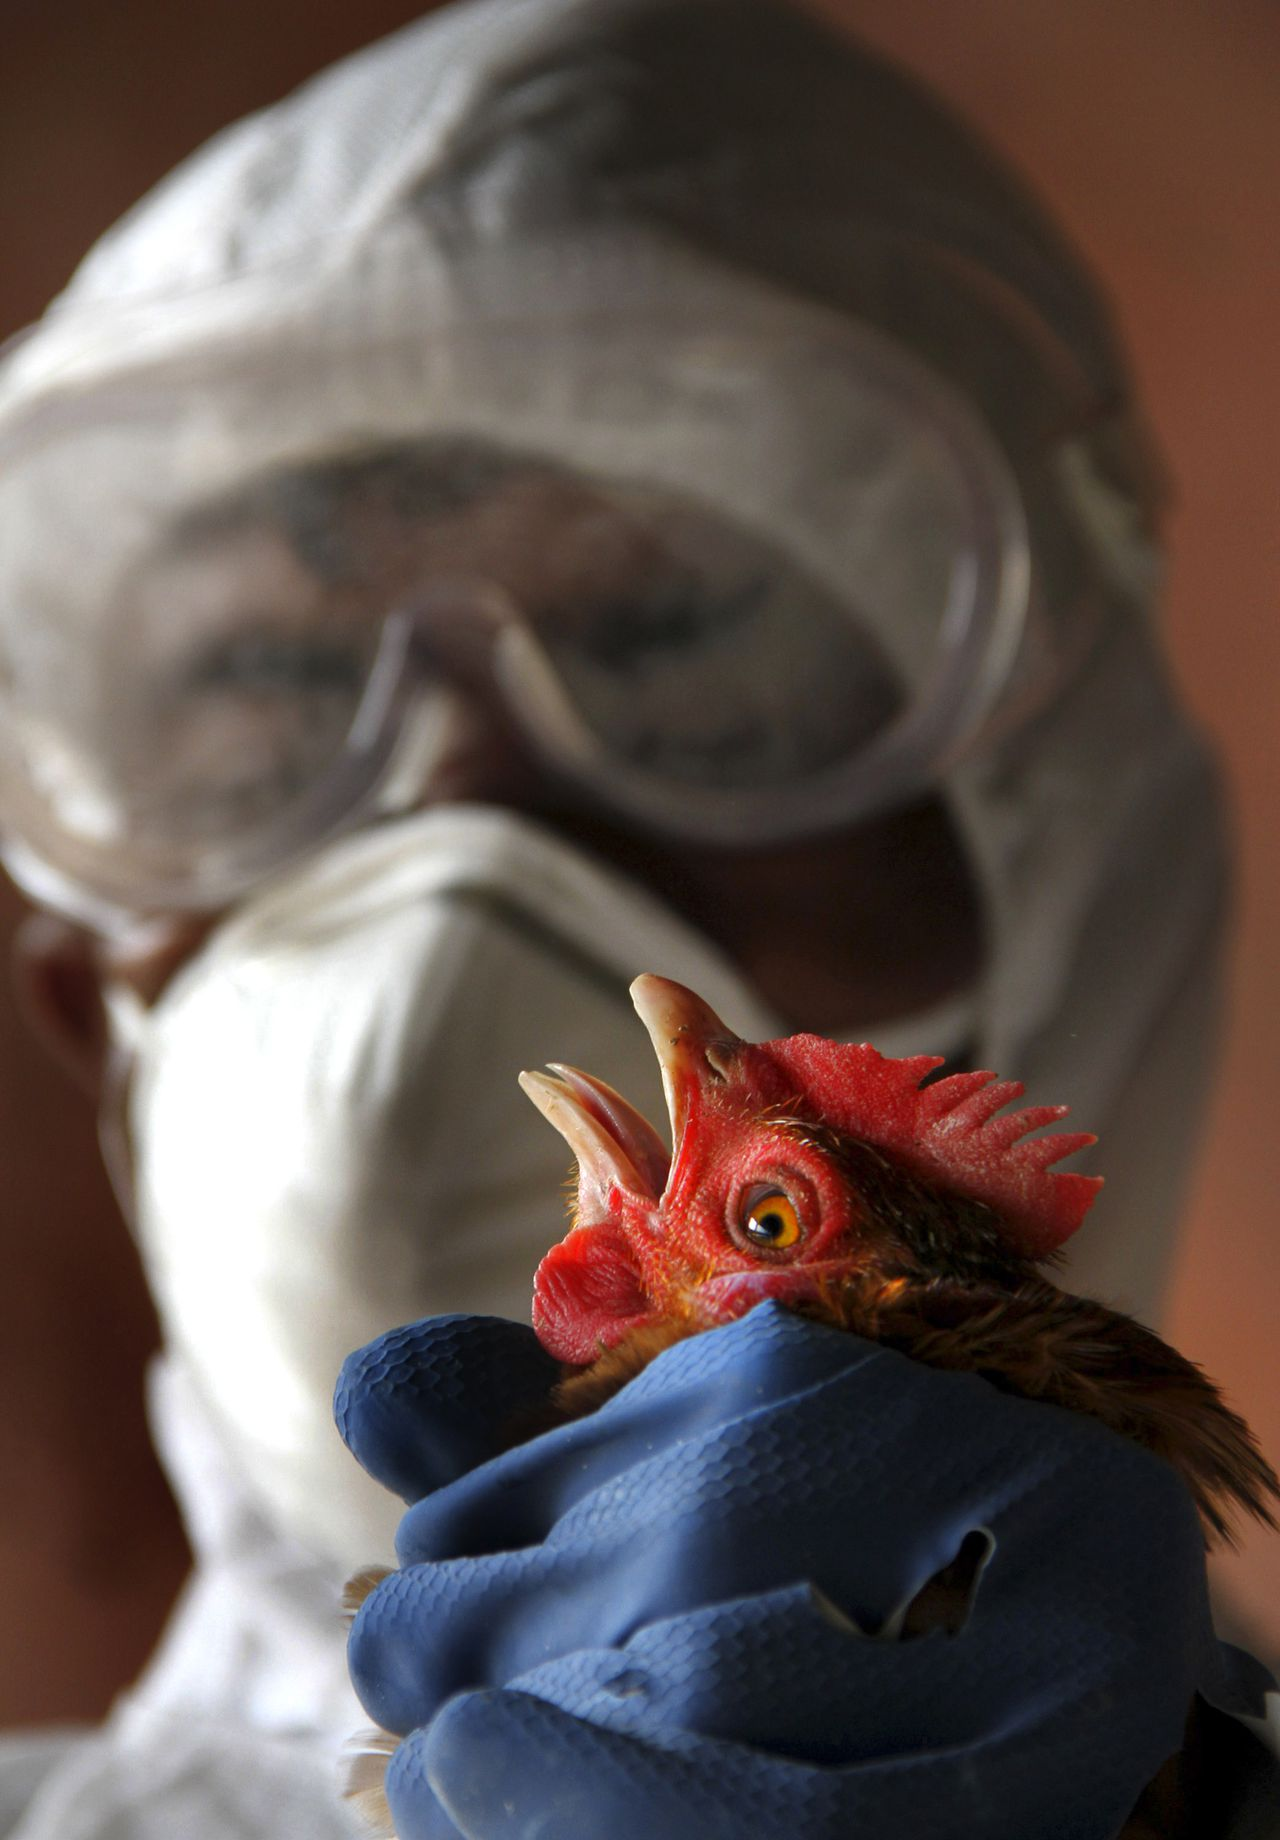 A Health Department official wearing protective gear culls a bird at a poultry farm after bird flu virus was detected, in Lembucherra area near Agartala, India, Friday, Jan. 27, 2012. More than 2,000 birds were culled in Agartala in the north eastern Indian state of Tripura after reports of deaths of poultry birds in the area, blood samples were collected examined and H5 strain of avian influenza virus was found, according to the local agency Press trust of India. (AP Photo/Sushanta Das)